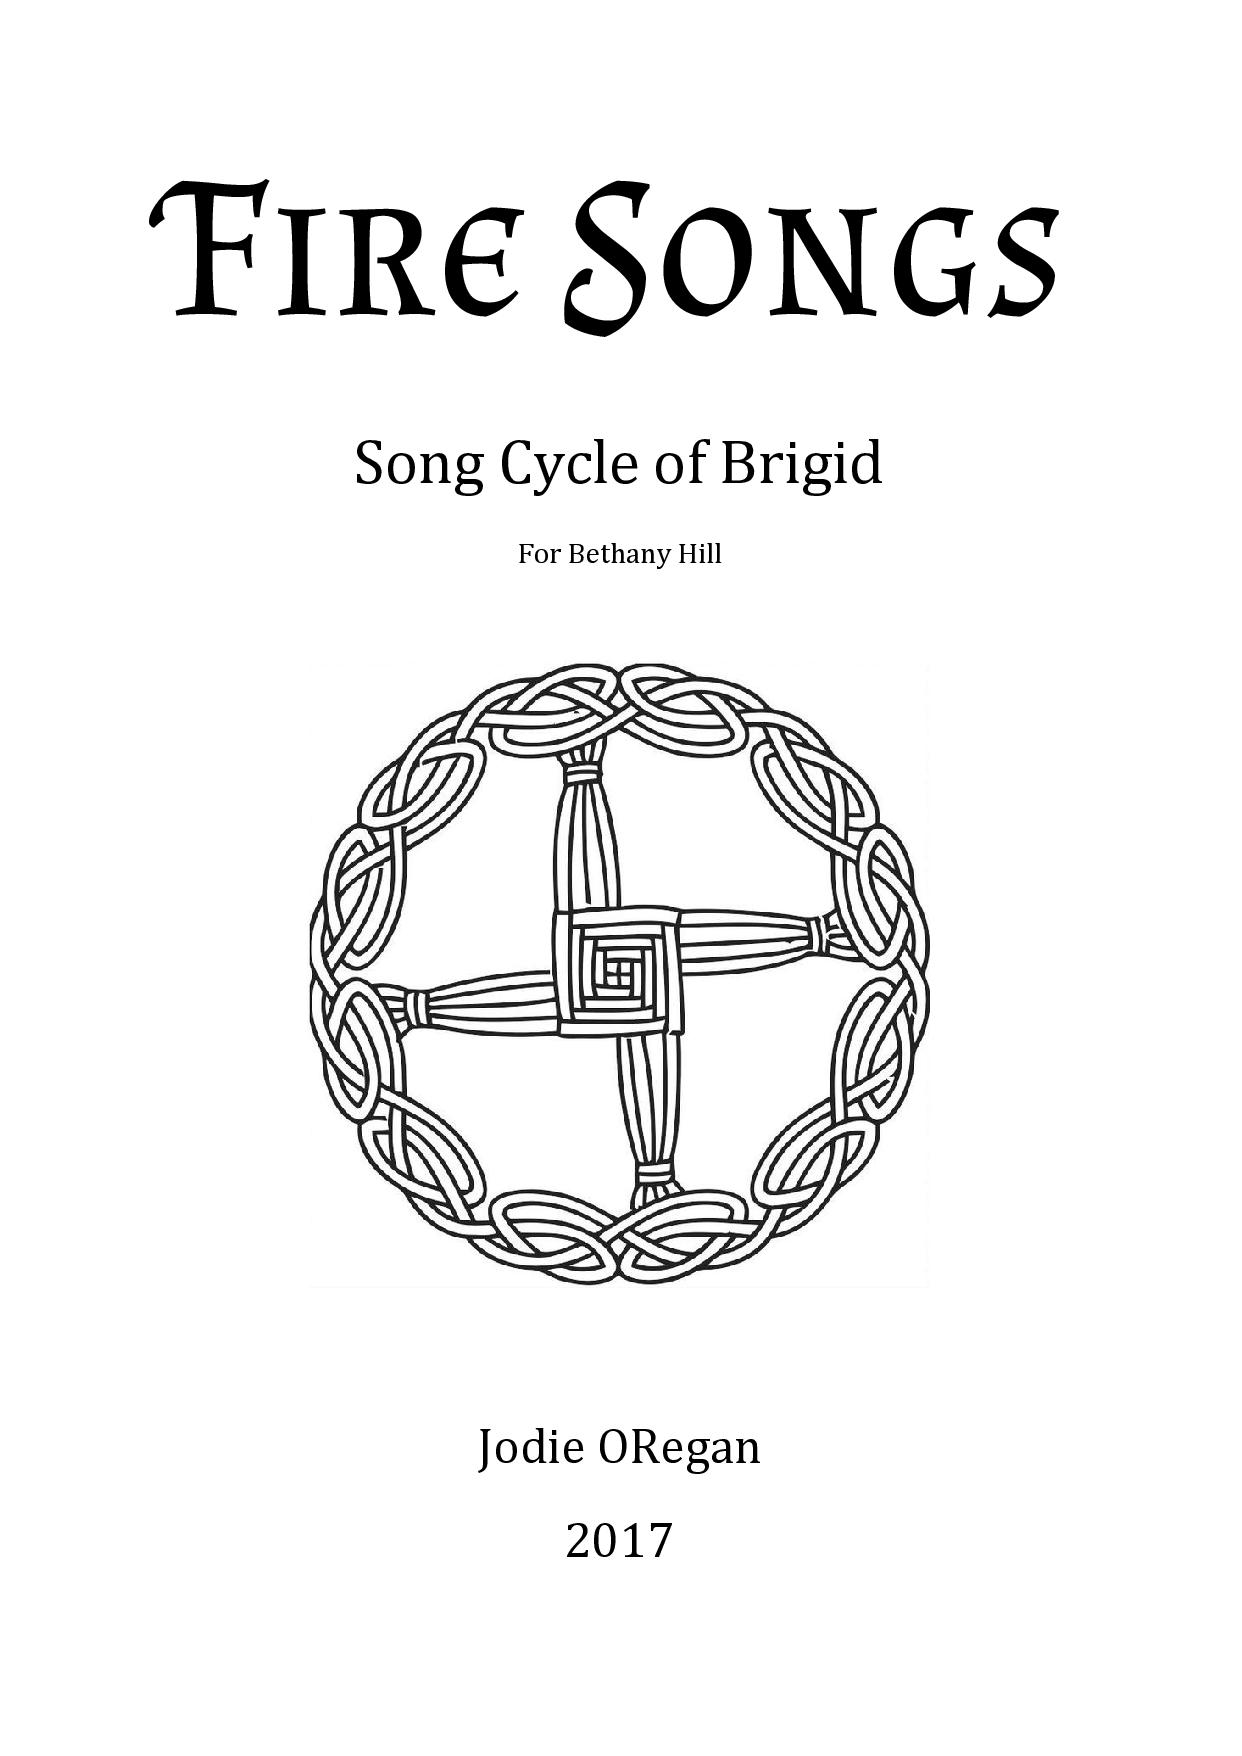 Fire Songs and Summer Change — song a week by Jodie